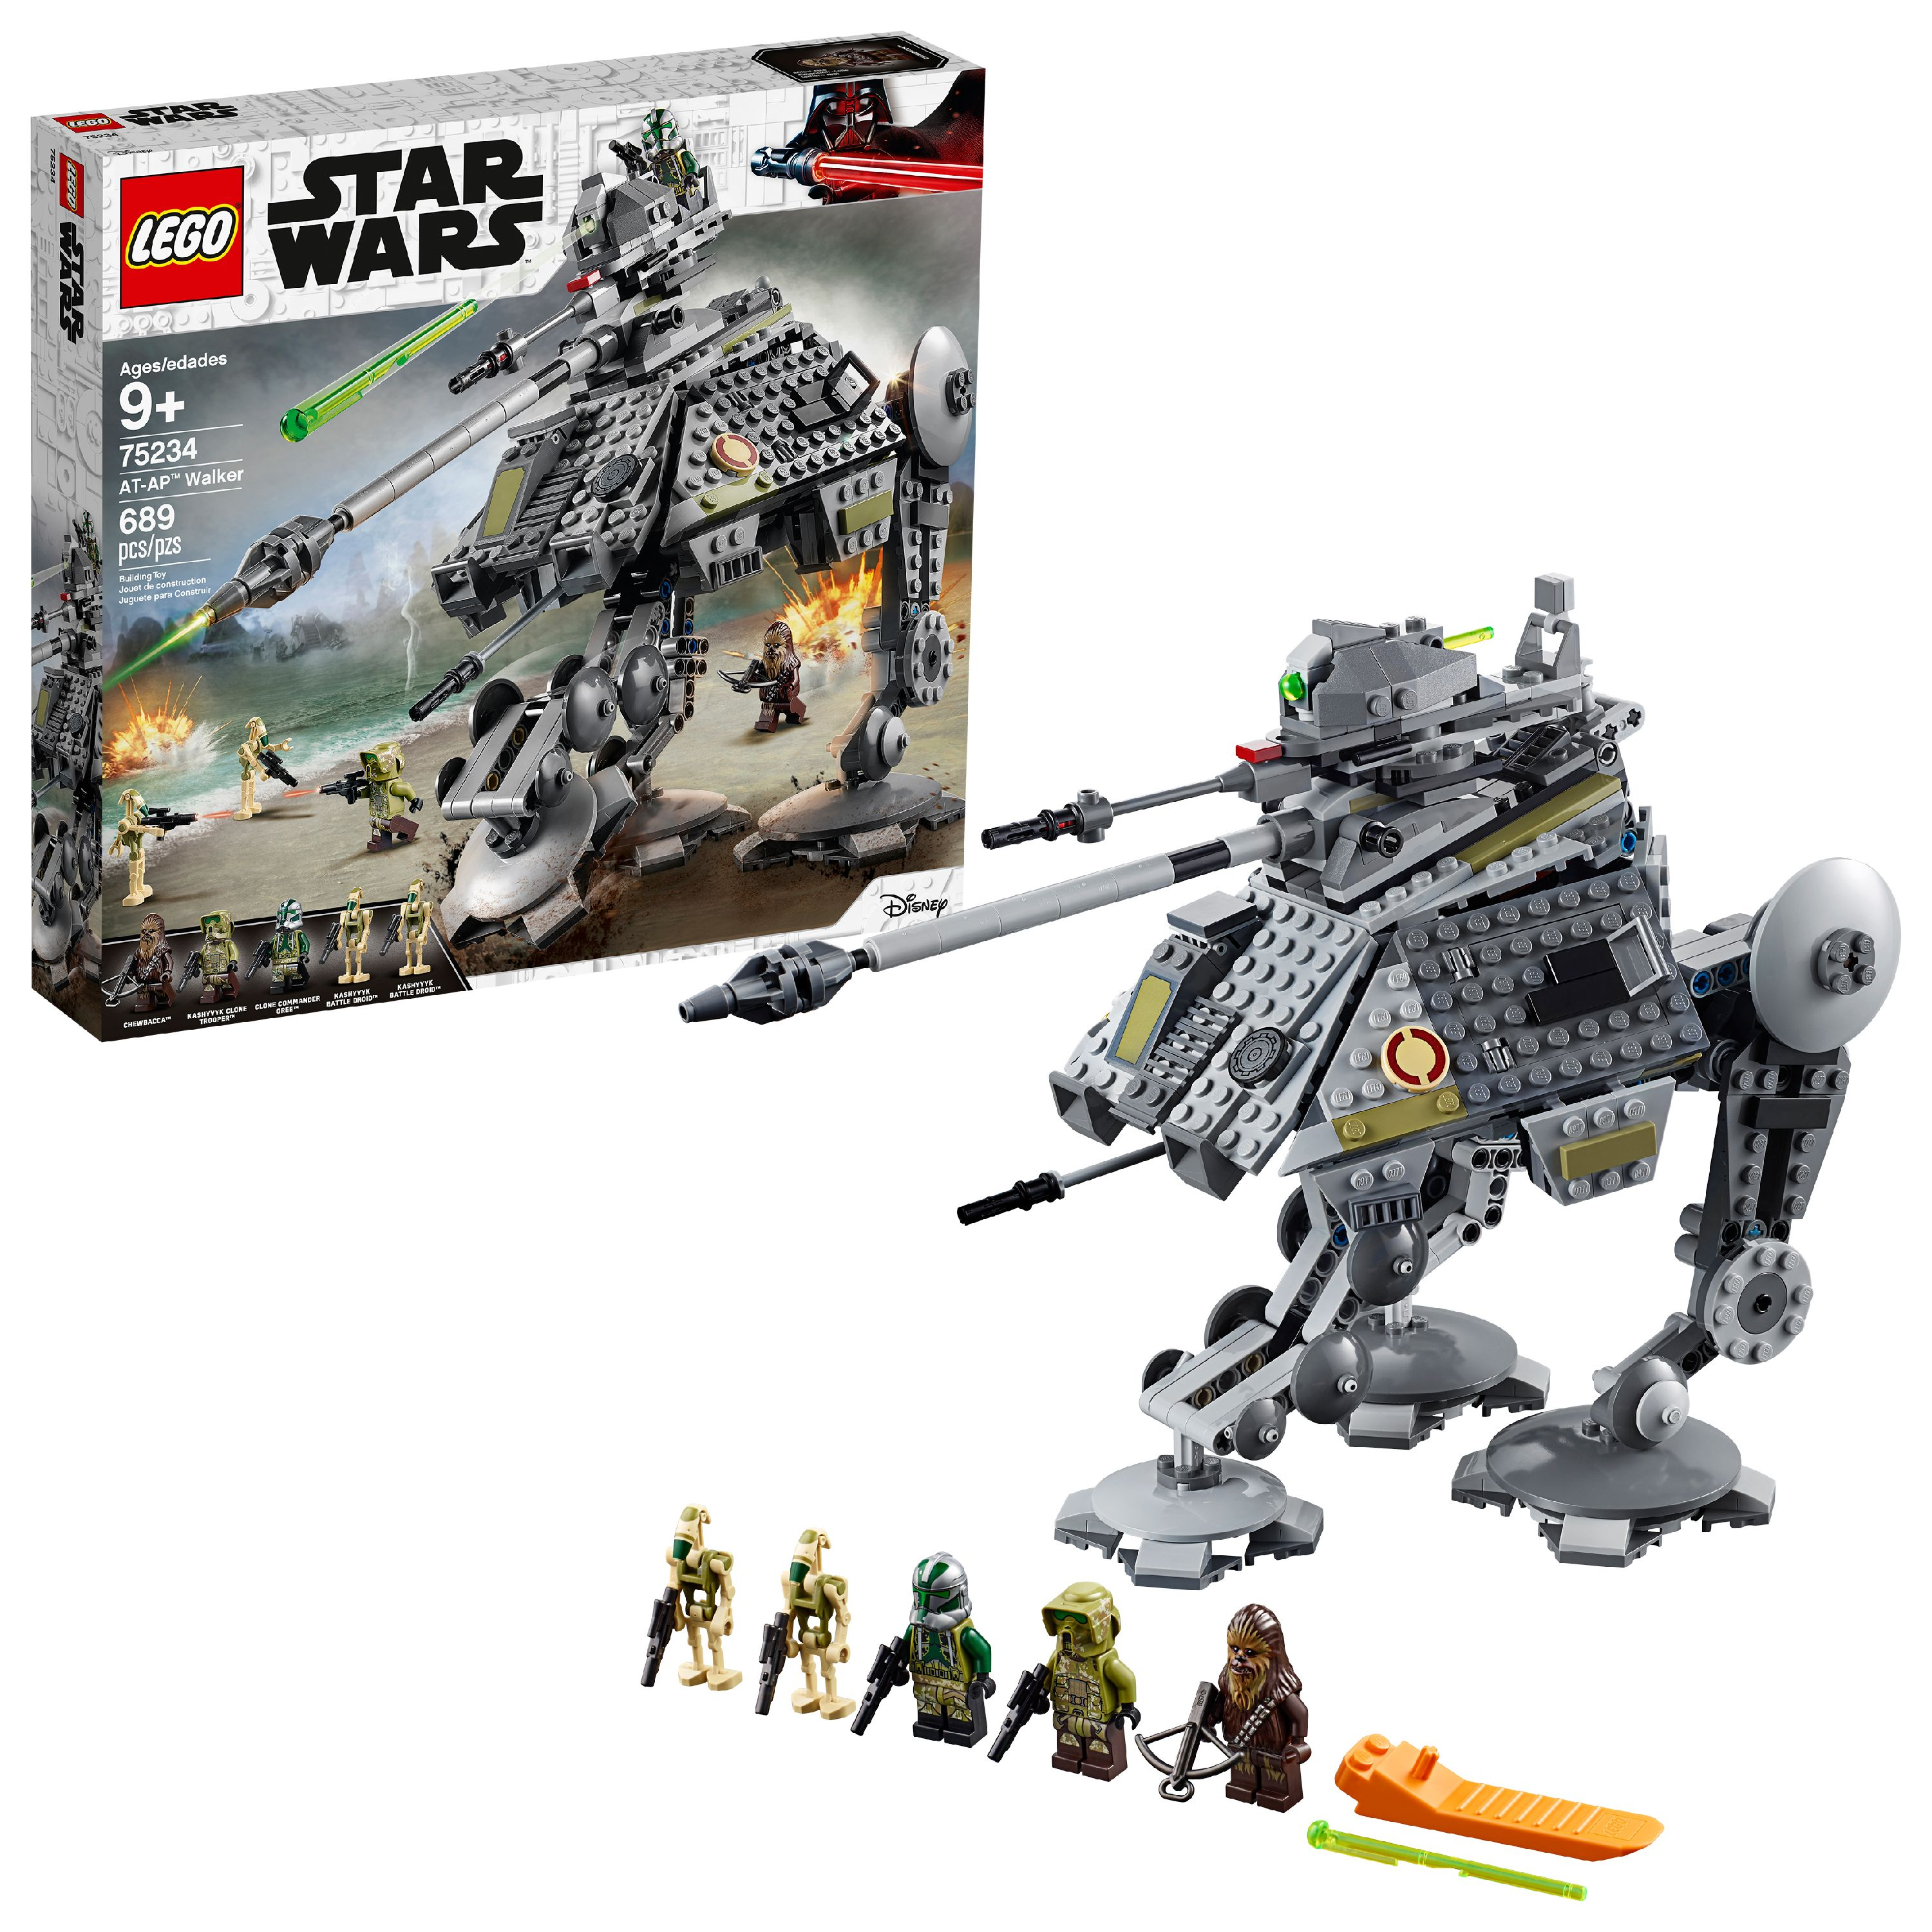 LEGO Star Wars TM AT-AP Walker 75234 Building Set (689 Pieces)